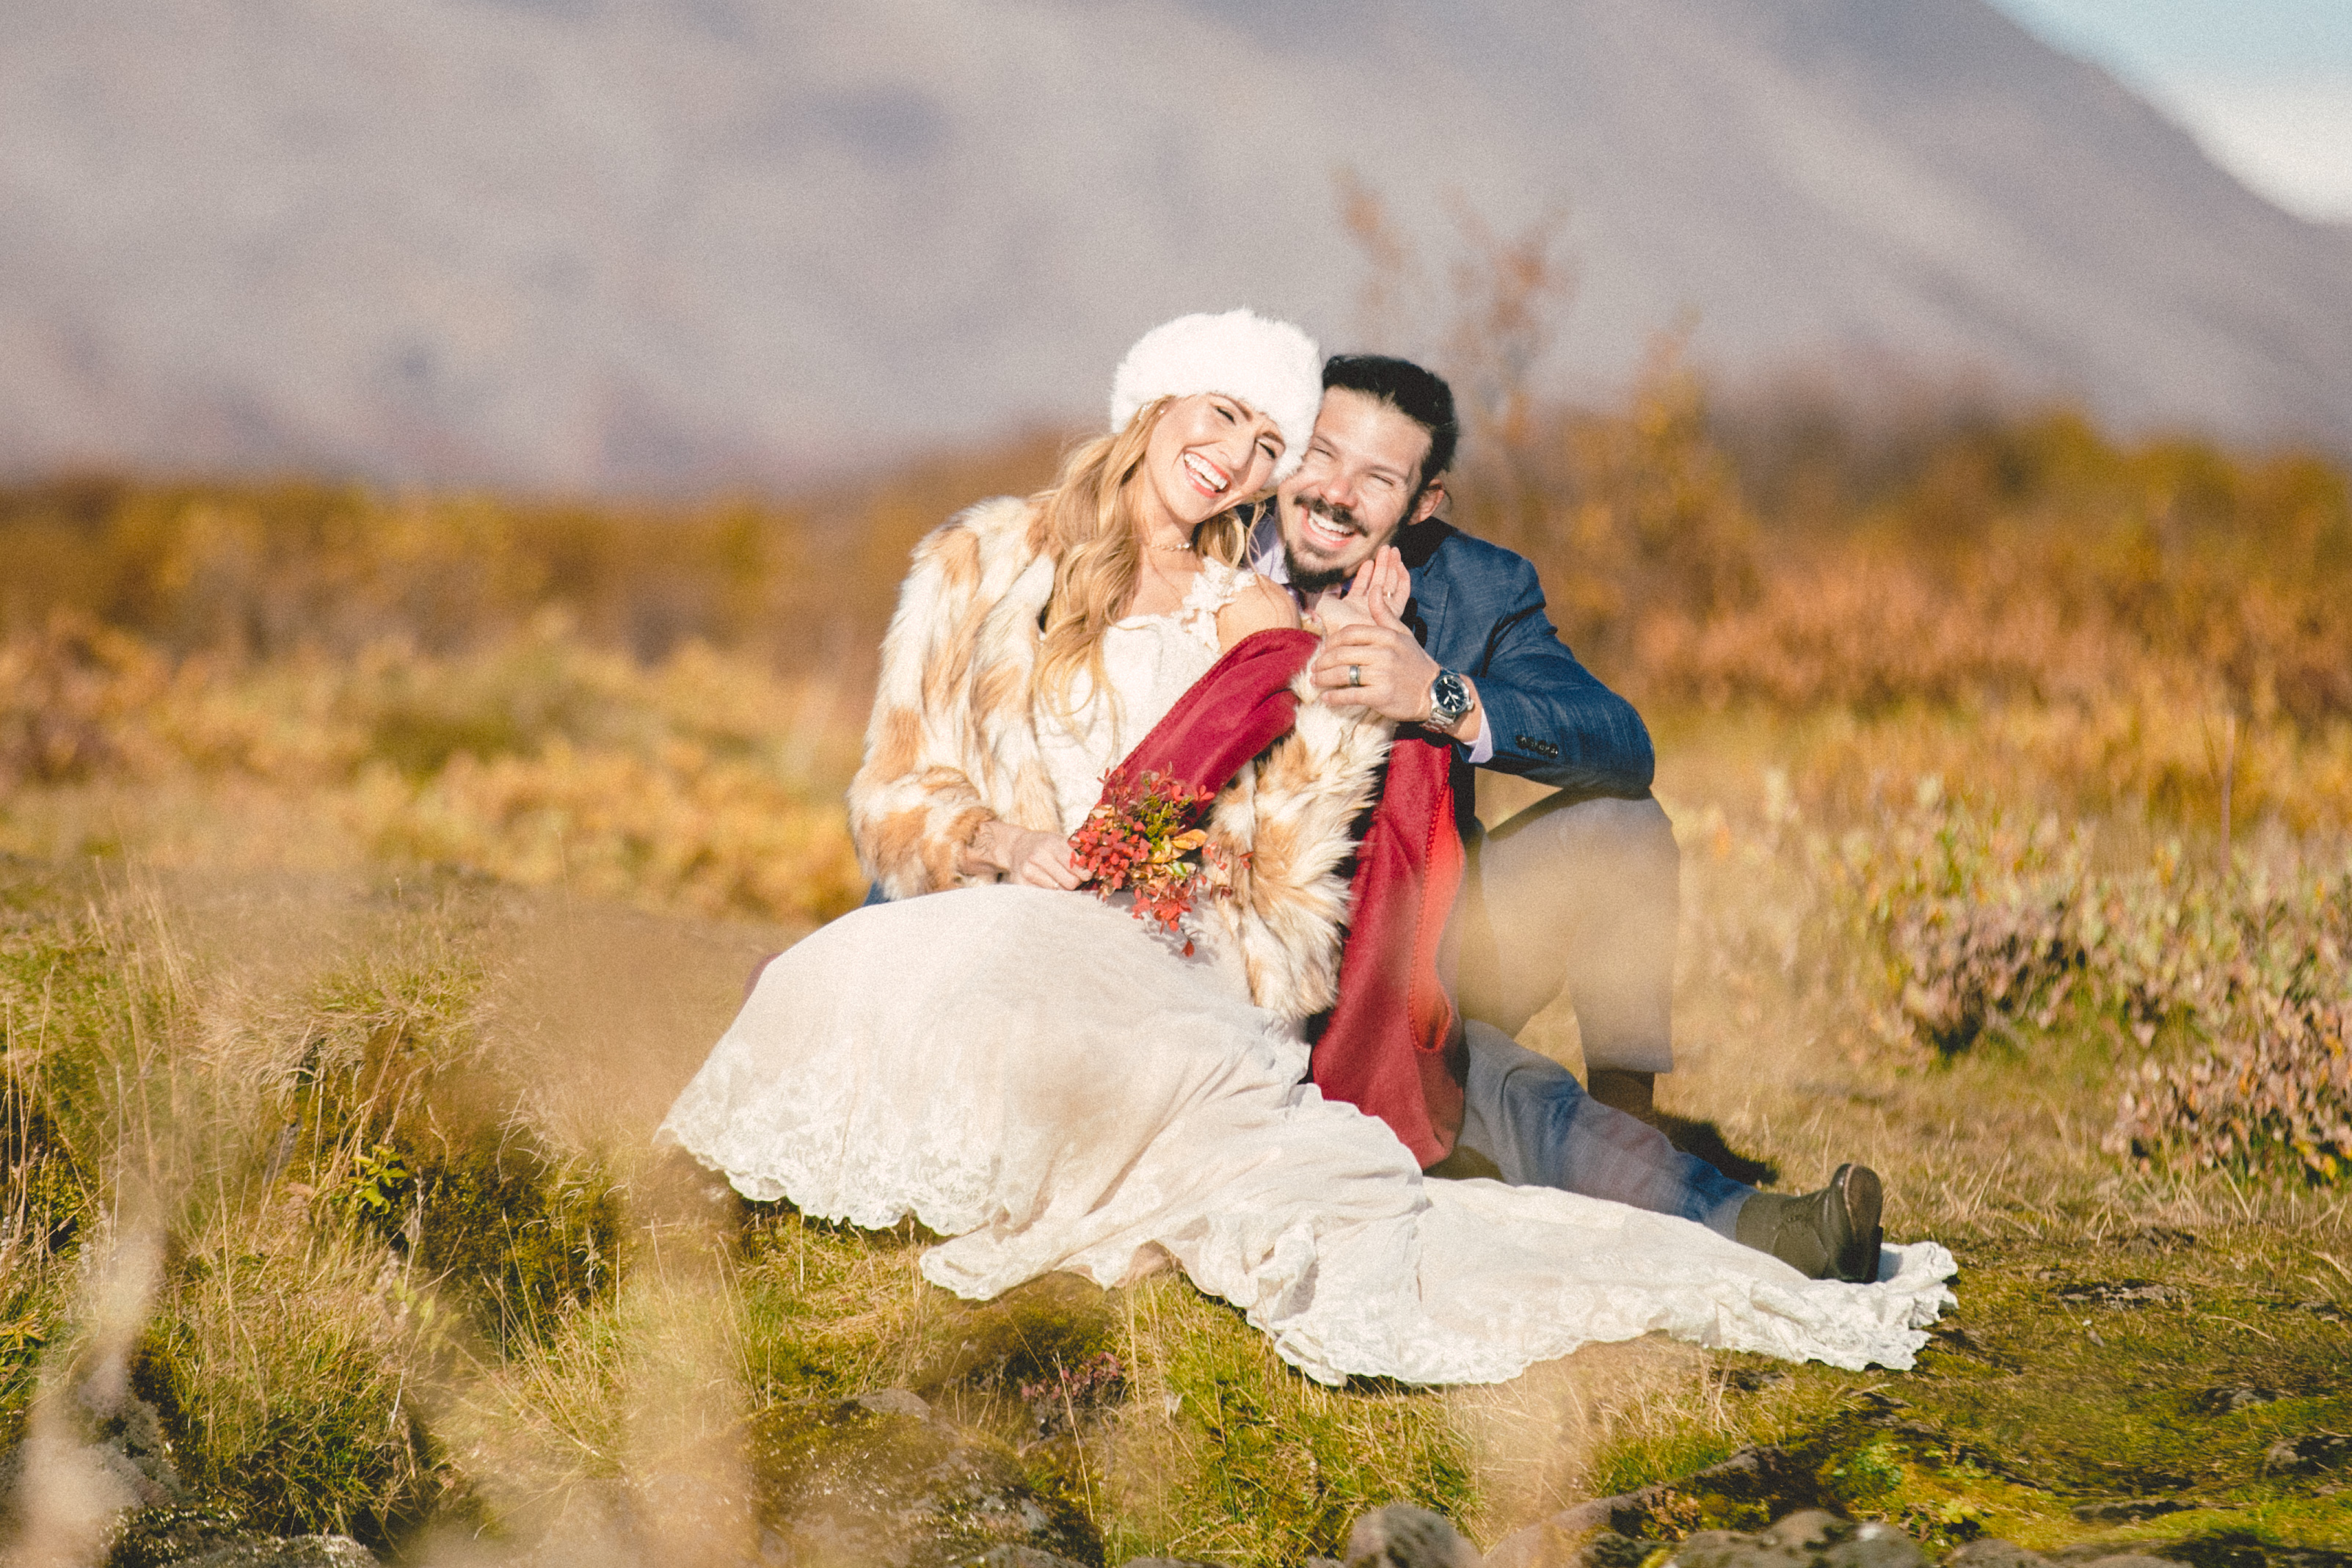 Iceland Wedding Photographer - Adventure Wedding in Iceland with Jenna Lee Pictures